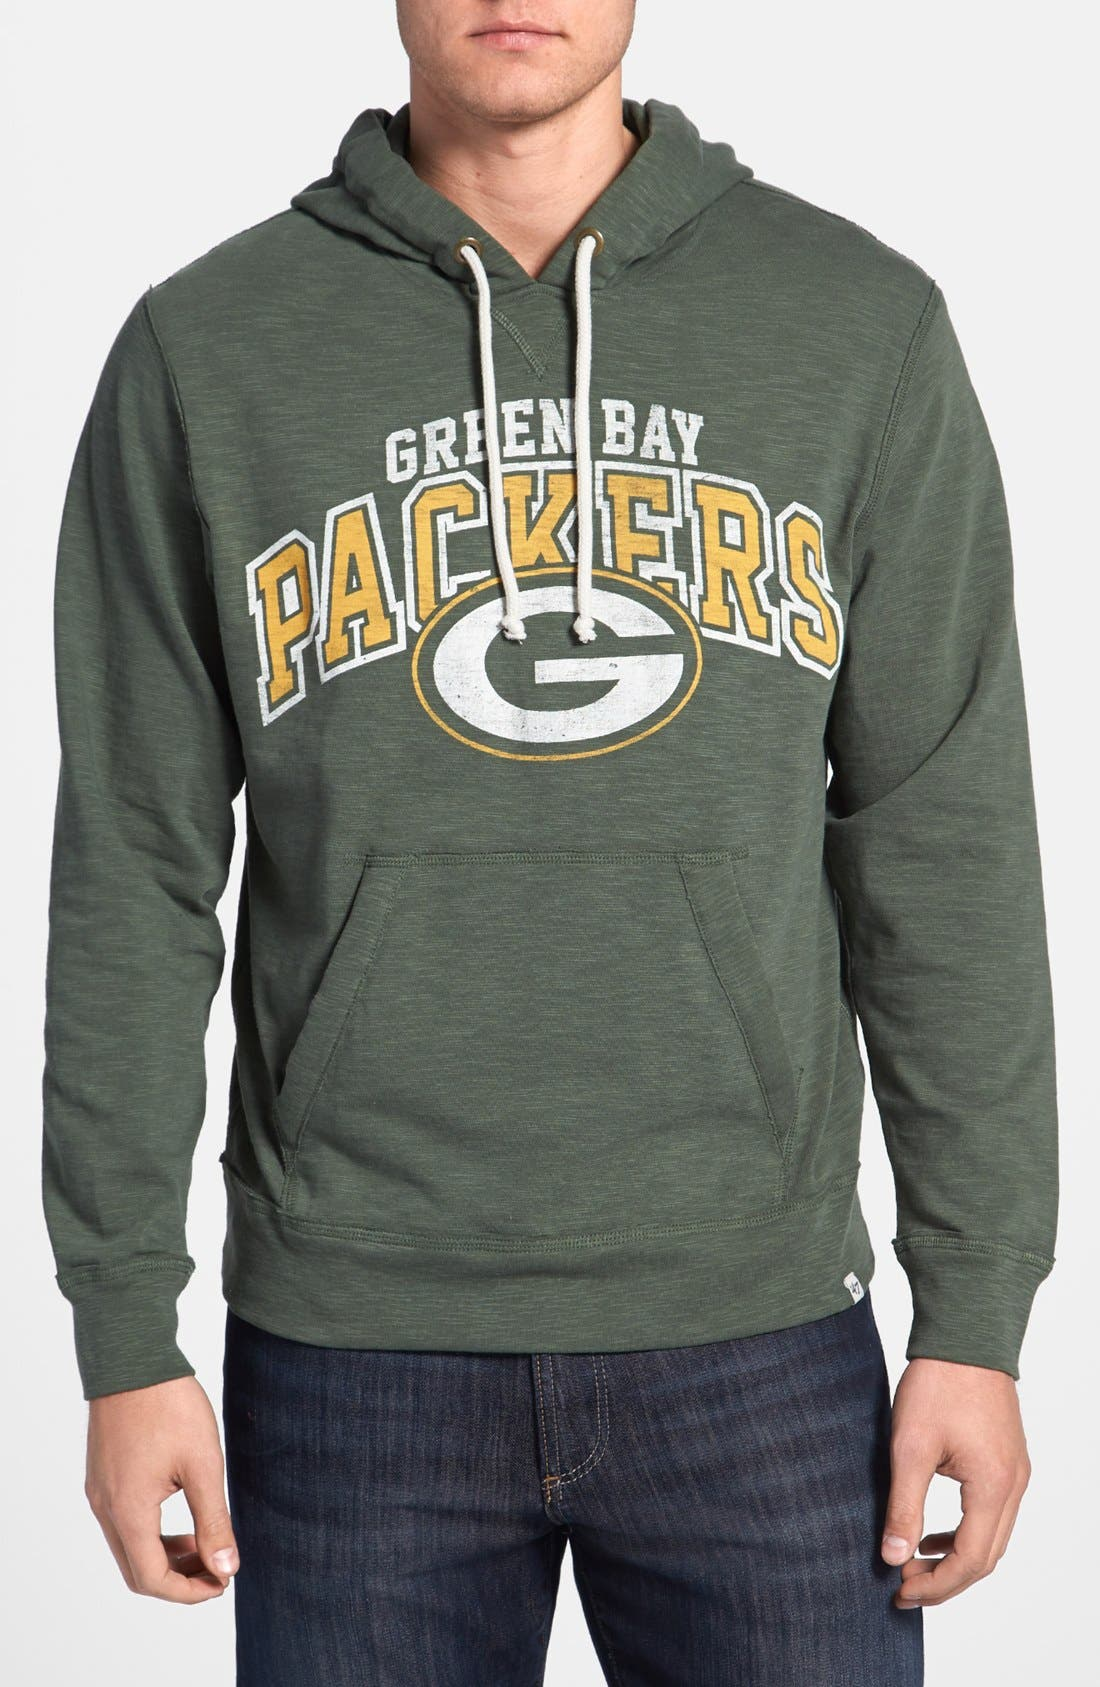 Main Image - '47 'Slugger - Green Bay Packets' Hoodie